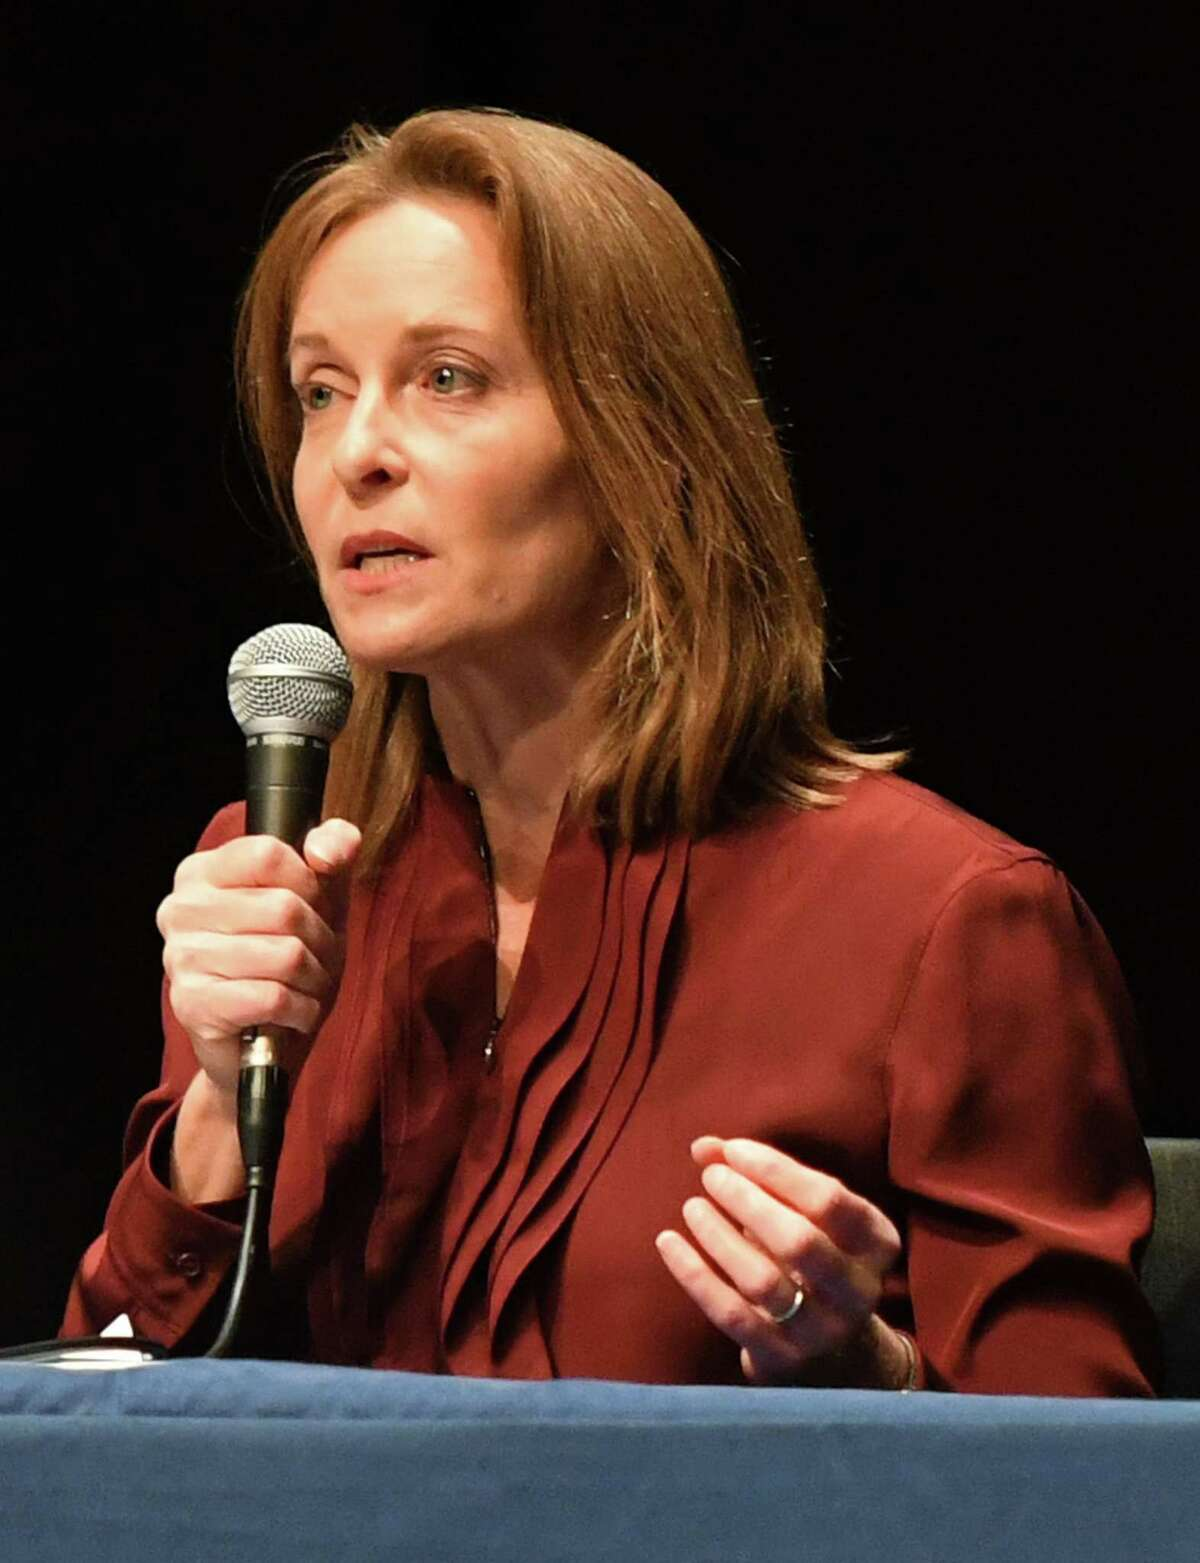 Selectperson Jill Oberlander will not enter the race for the 36th District in the State Senate.